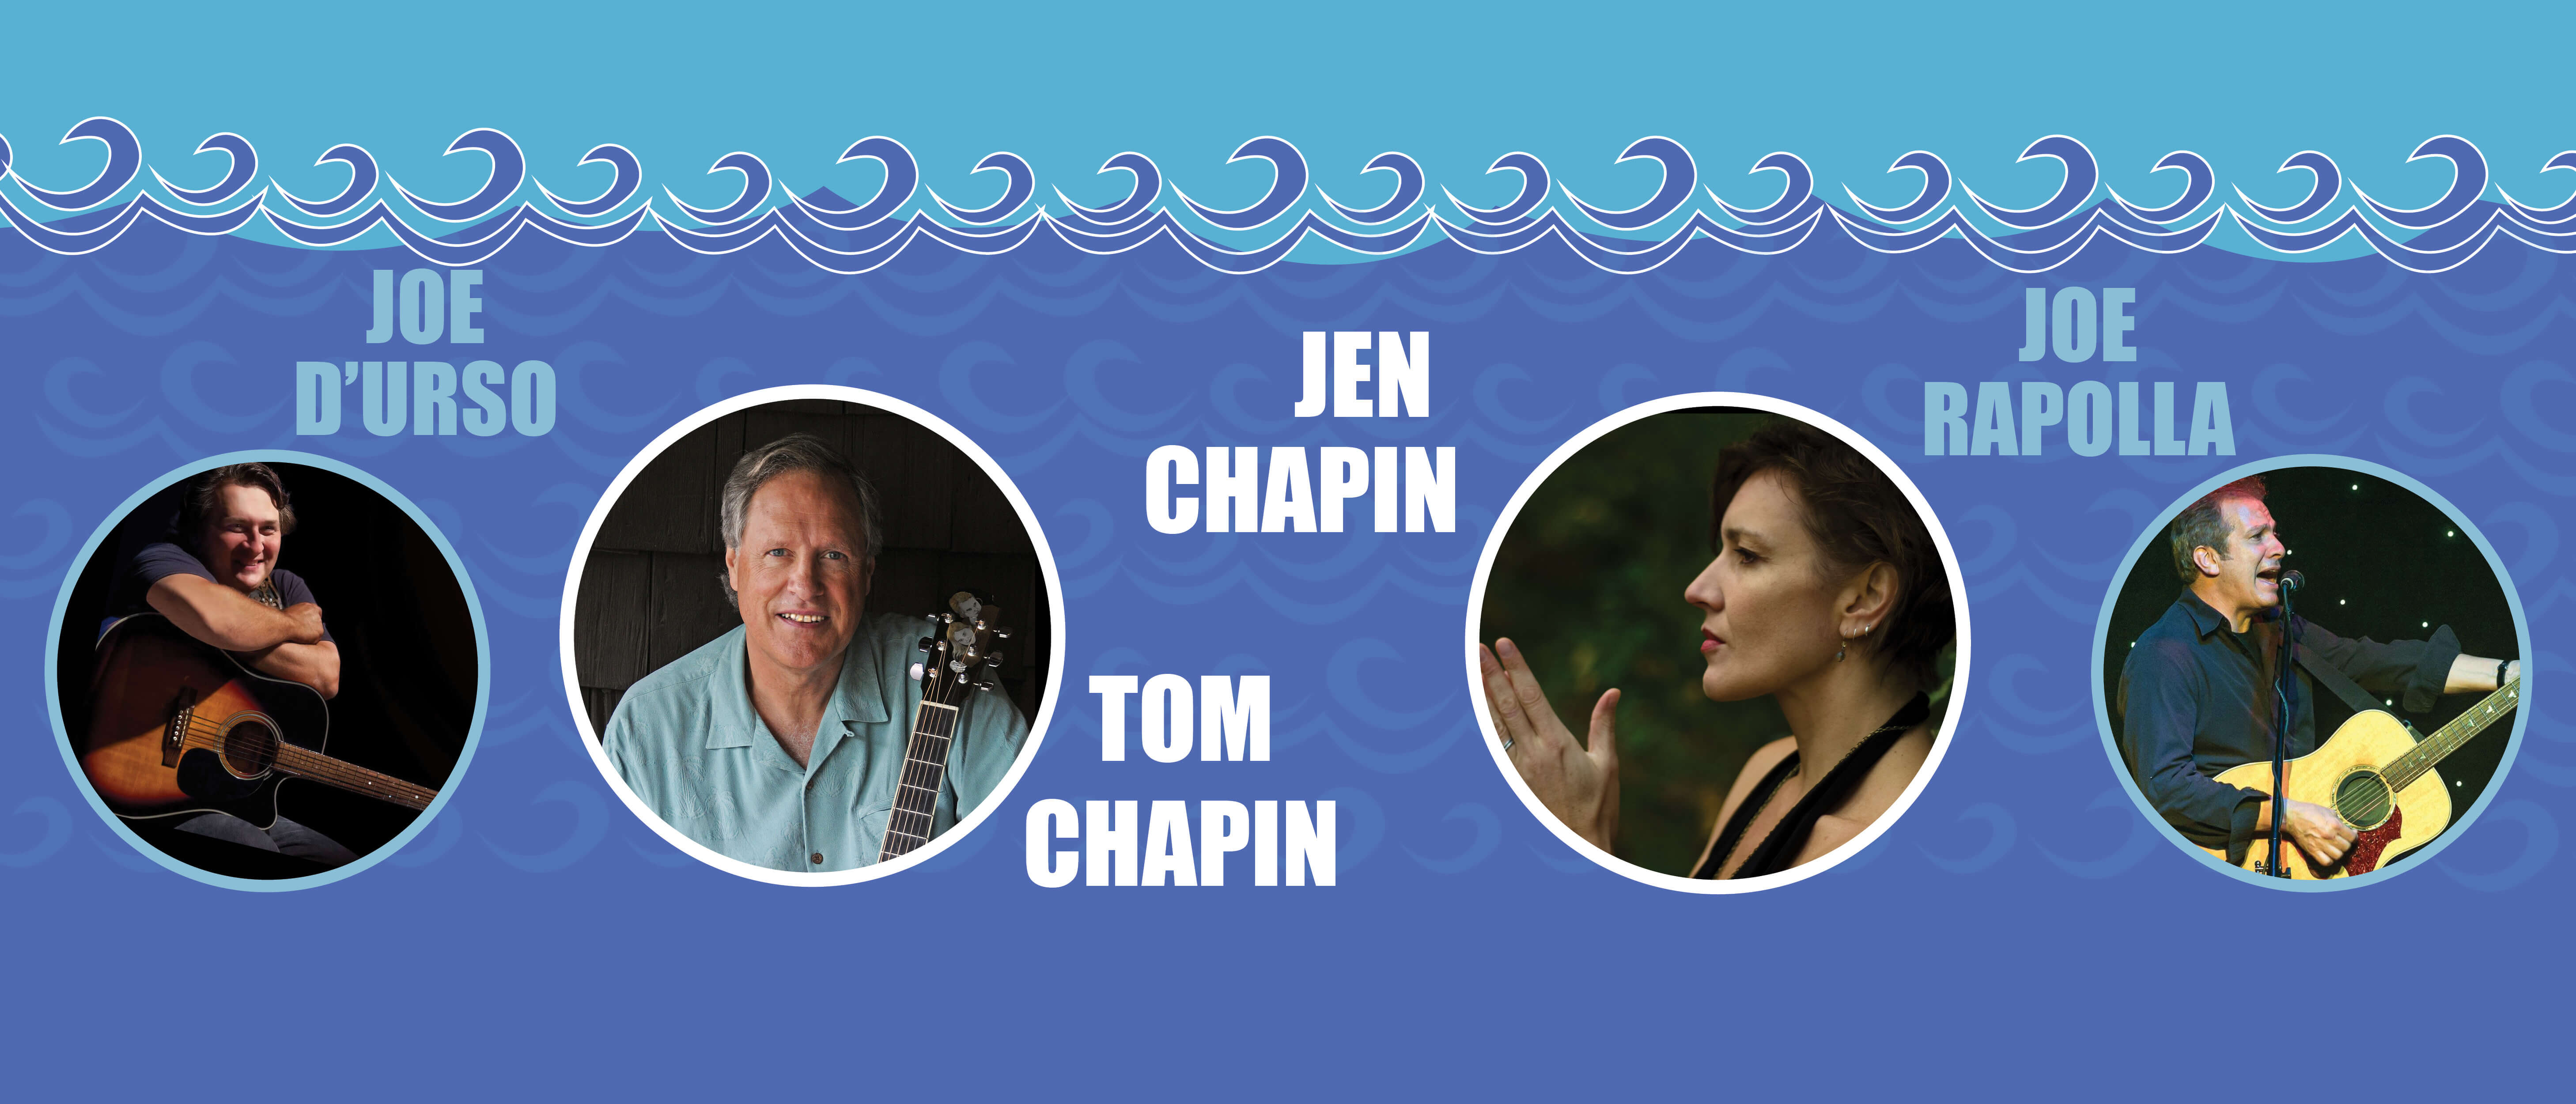 Photographic image for Songwriters by the Sea with Joe D'Urso, Tom Chapin, Jen Chapin and Joe Rapolla